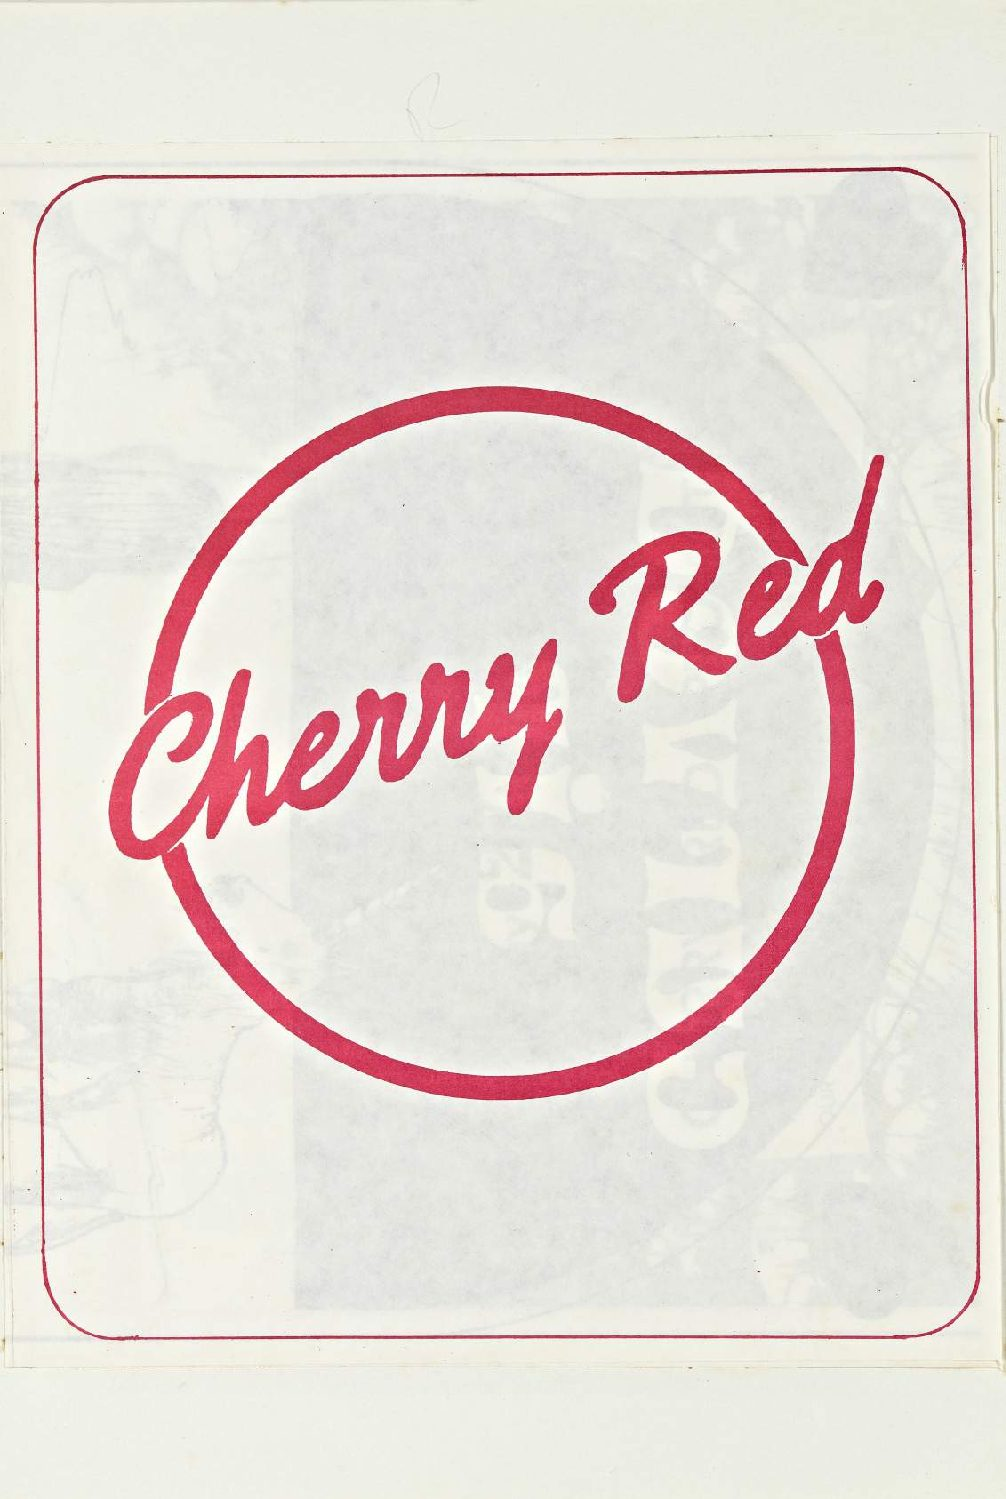 Cherry Red 'fanzine', including advert for Curved Air at Malvern Winter Gardens, 27 March 1975